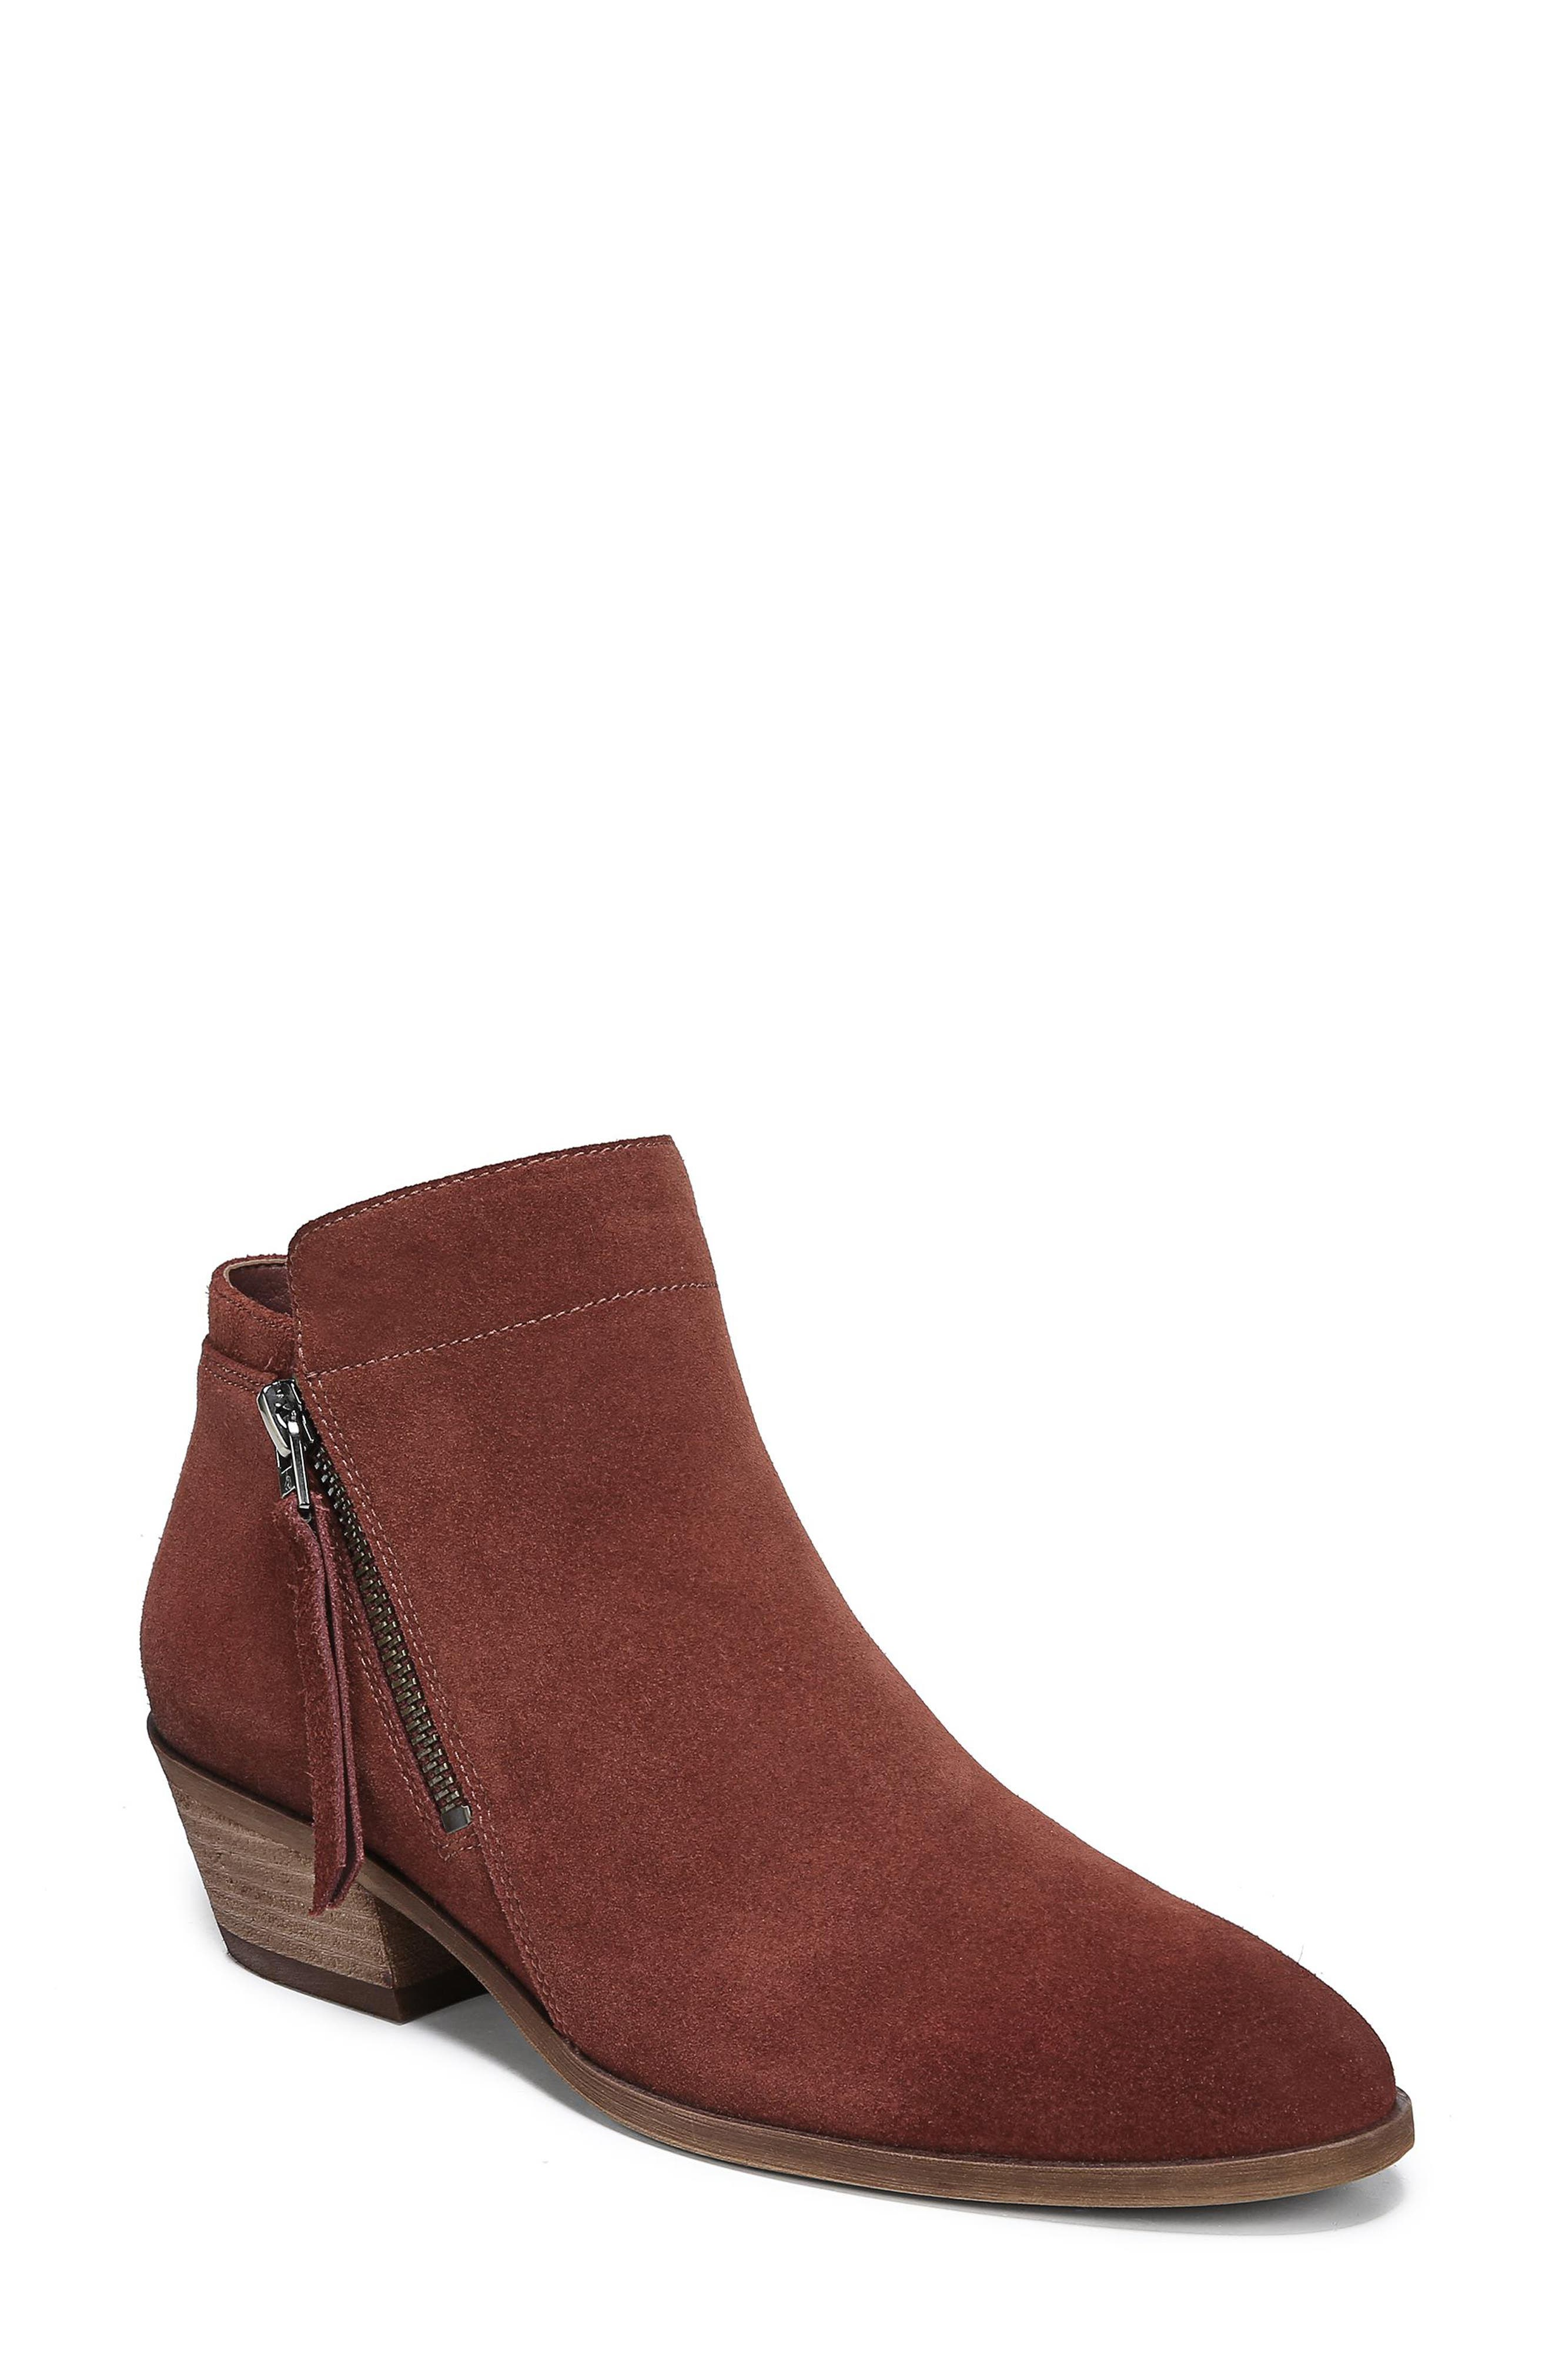 Sam Edelman Packer Bootie- Red